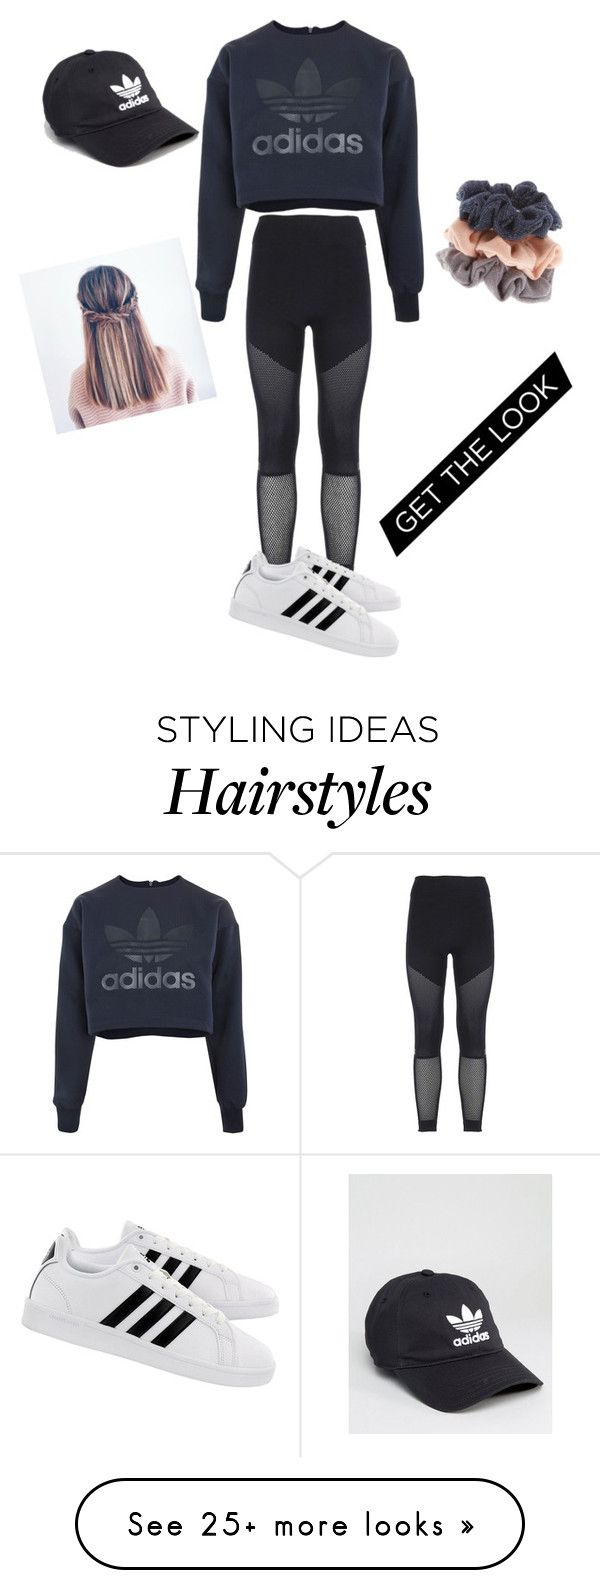 """Hoodie"" by kaley-mcevoy on Polyvore featuring adidas and Hoodies"